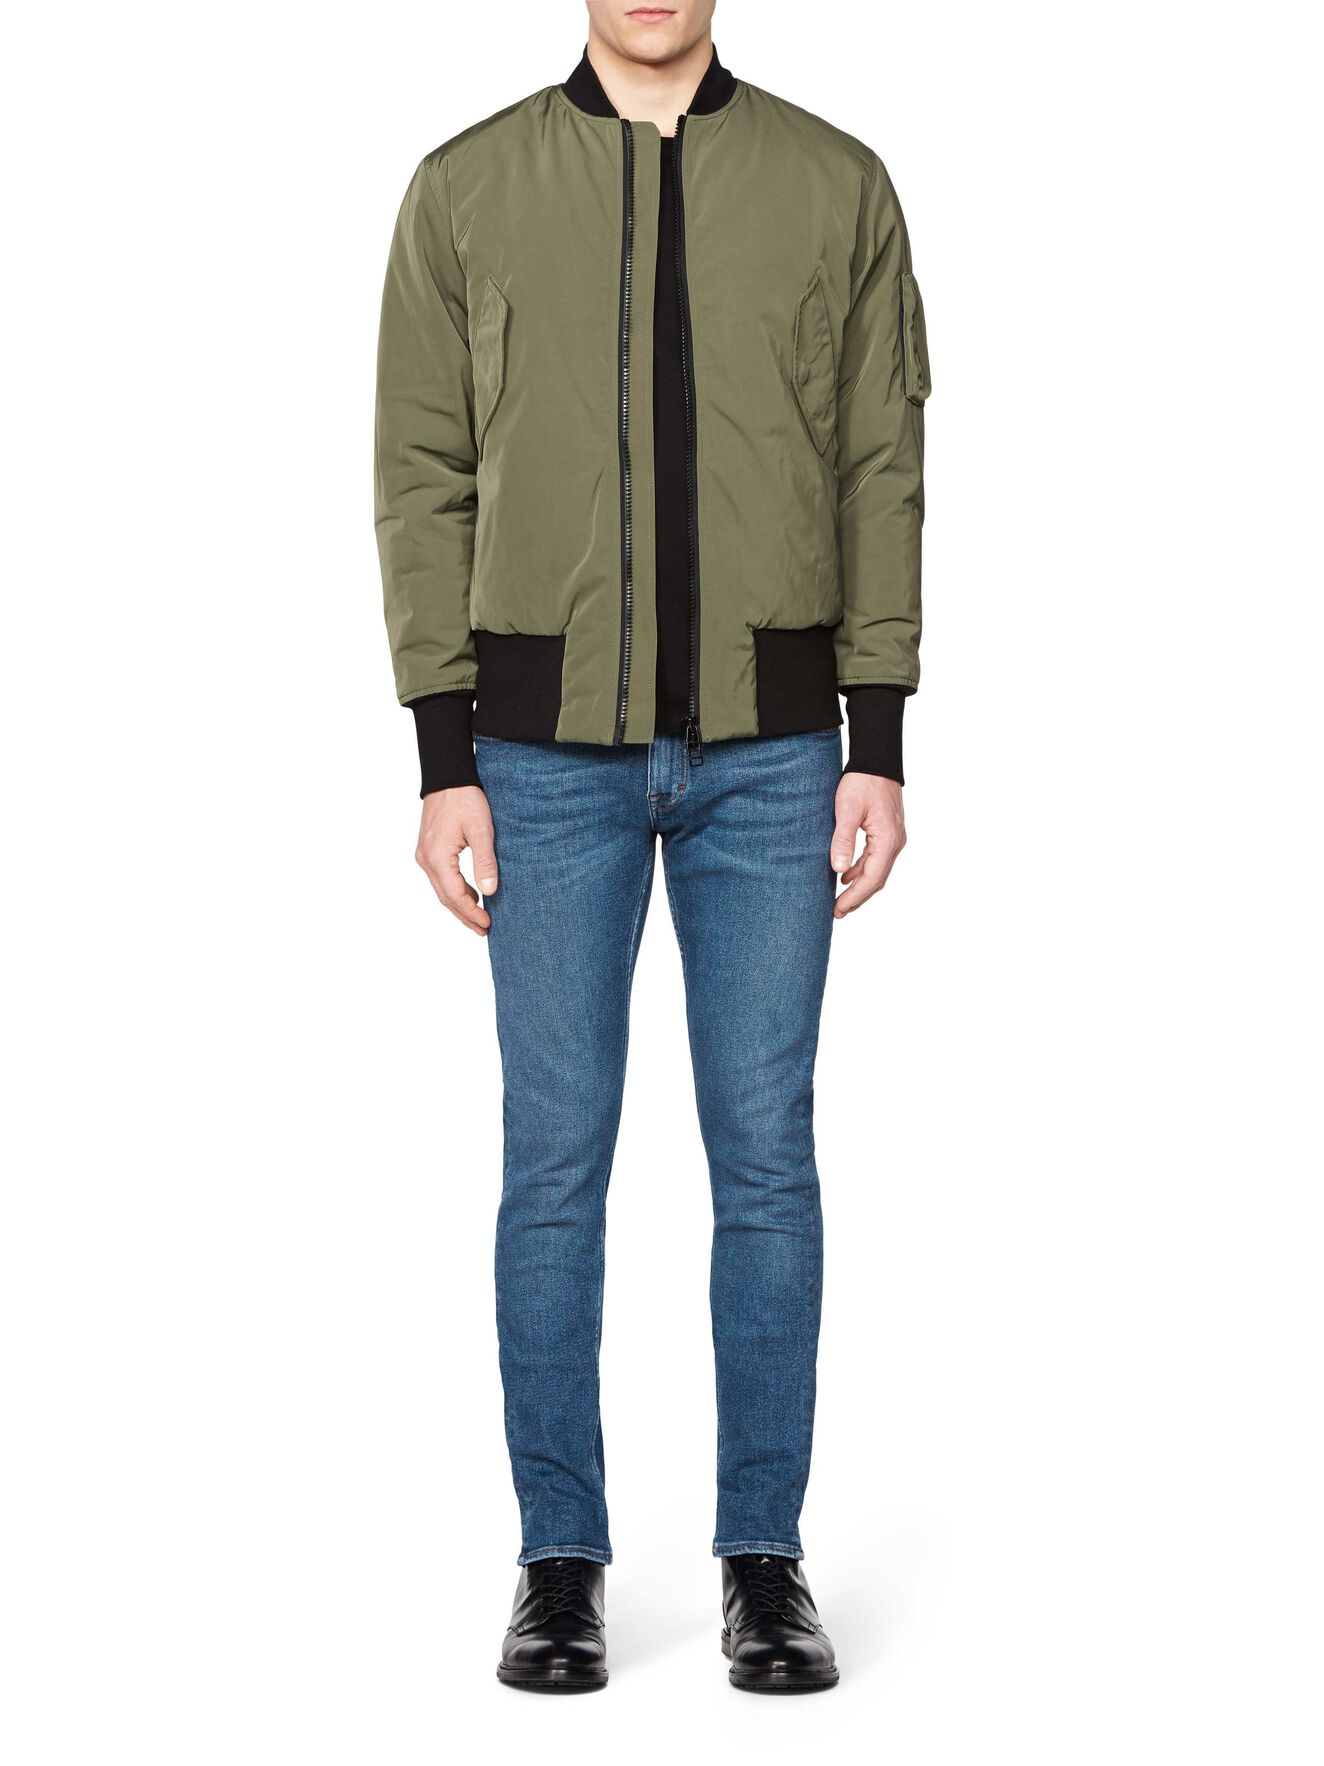 SOB JACKET in Dark Khaki Green from Tiger of Sweden